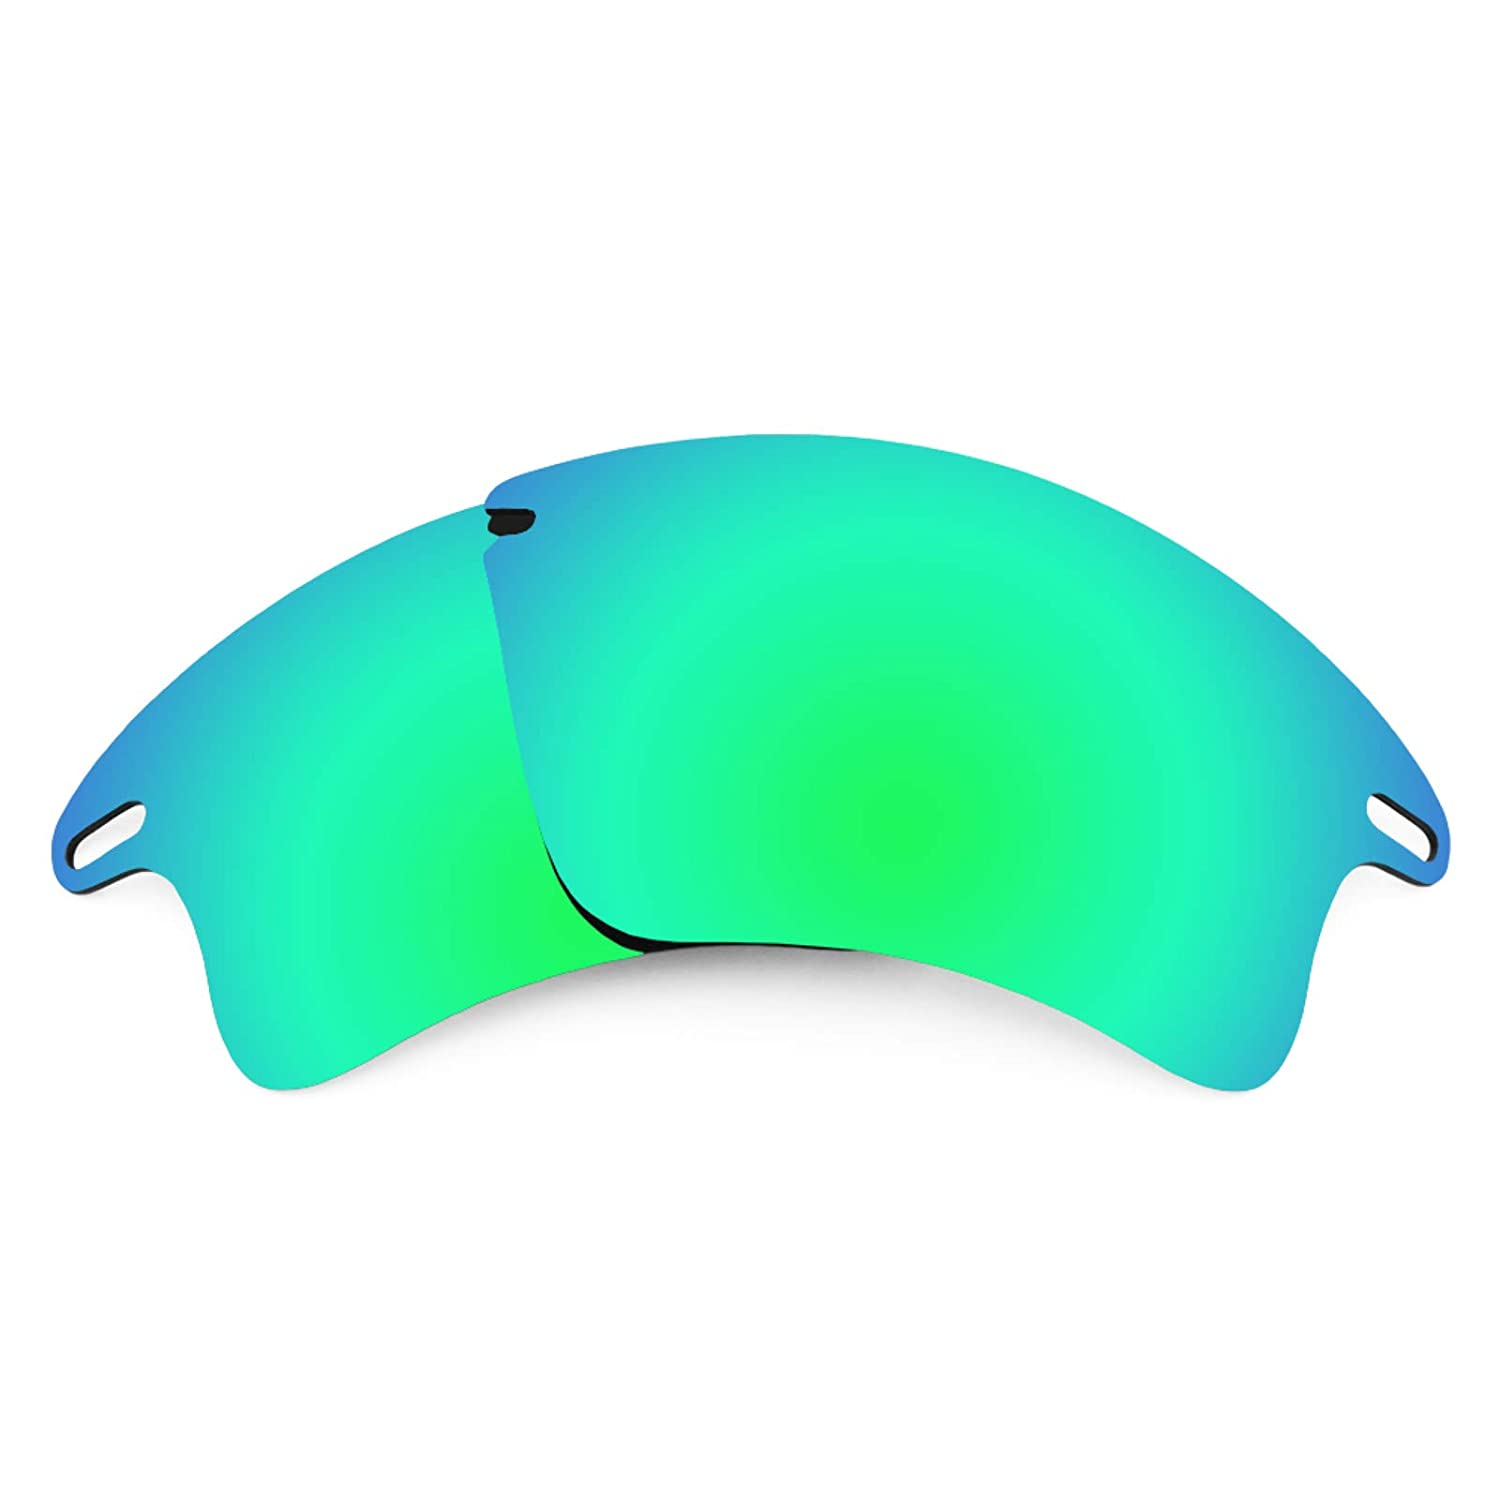 73ab0b130ff97 Revant Polarized Replacement Lenses for Oakley Fast Jacket XL EliteRogue  Green MirrorShield®  Amazon.ca  Sports   Outdoors